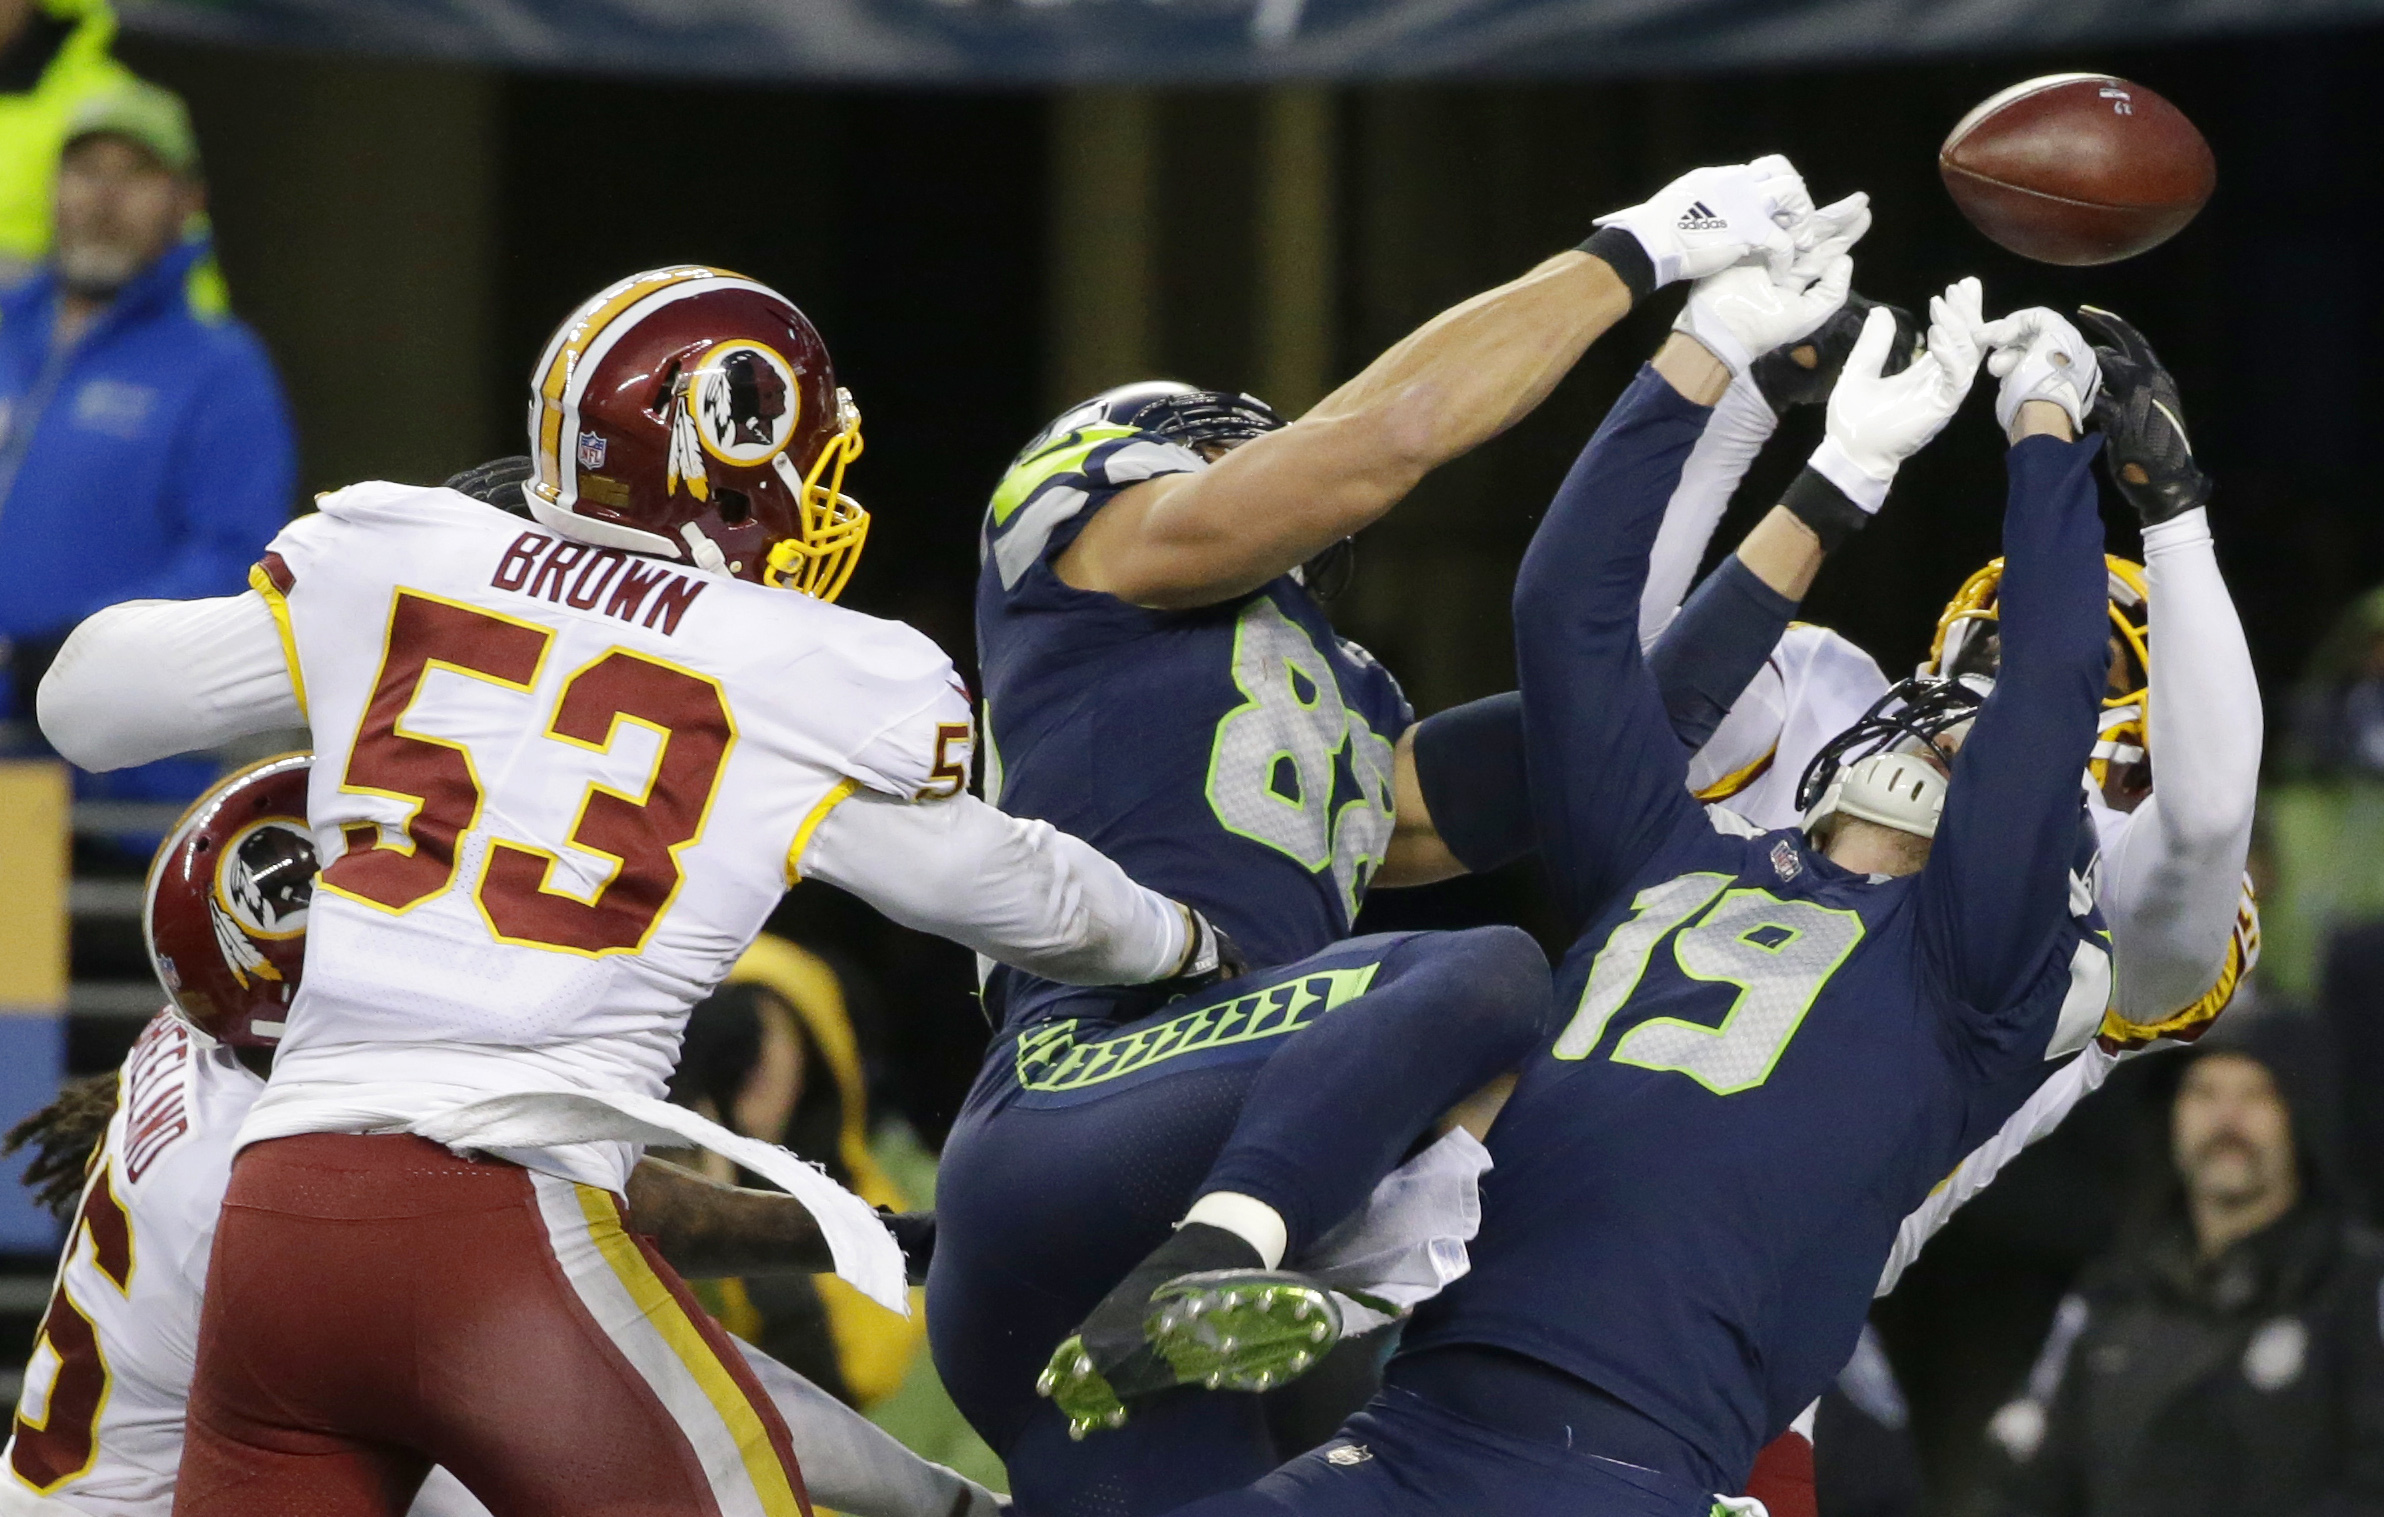 Washington Redskins free safety DeAngelo Hall, right obscured, and inside linebacker Zach Brown (53) break up a pass as Seattle Seahawks tight end Jimmy Graham (88) and wide receiver Tanner McEvoy (19) reach for the ball late in the second half of an NFL football game, Sunday, Nov. 5, 2017, in Seattle. Washington won 17-14. (AP Photo/Stephen Brashear)